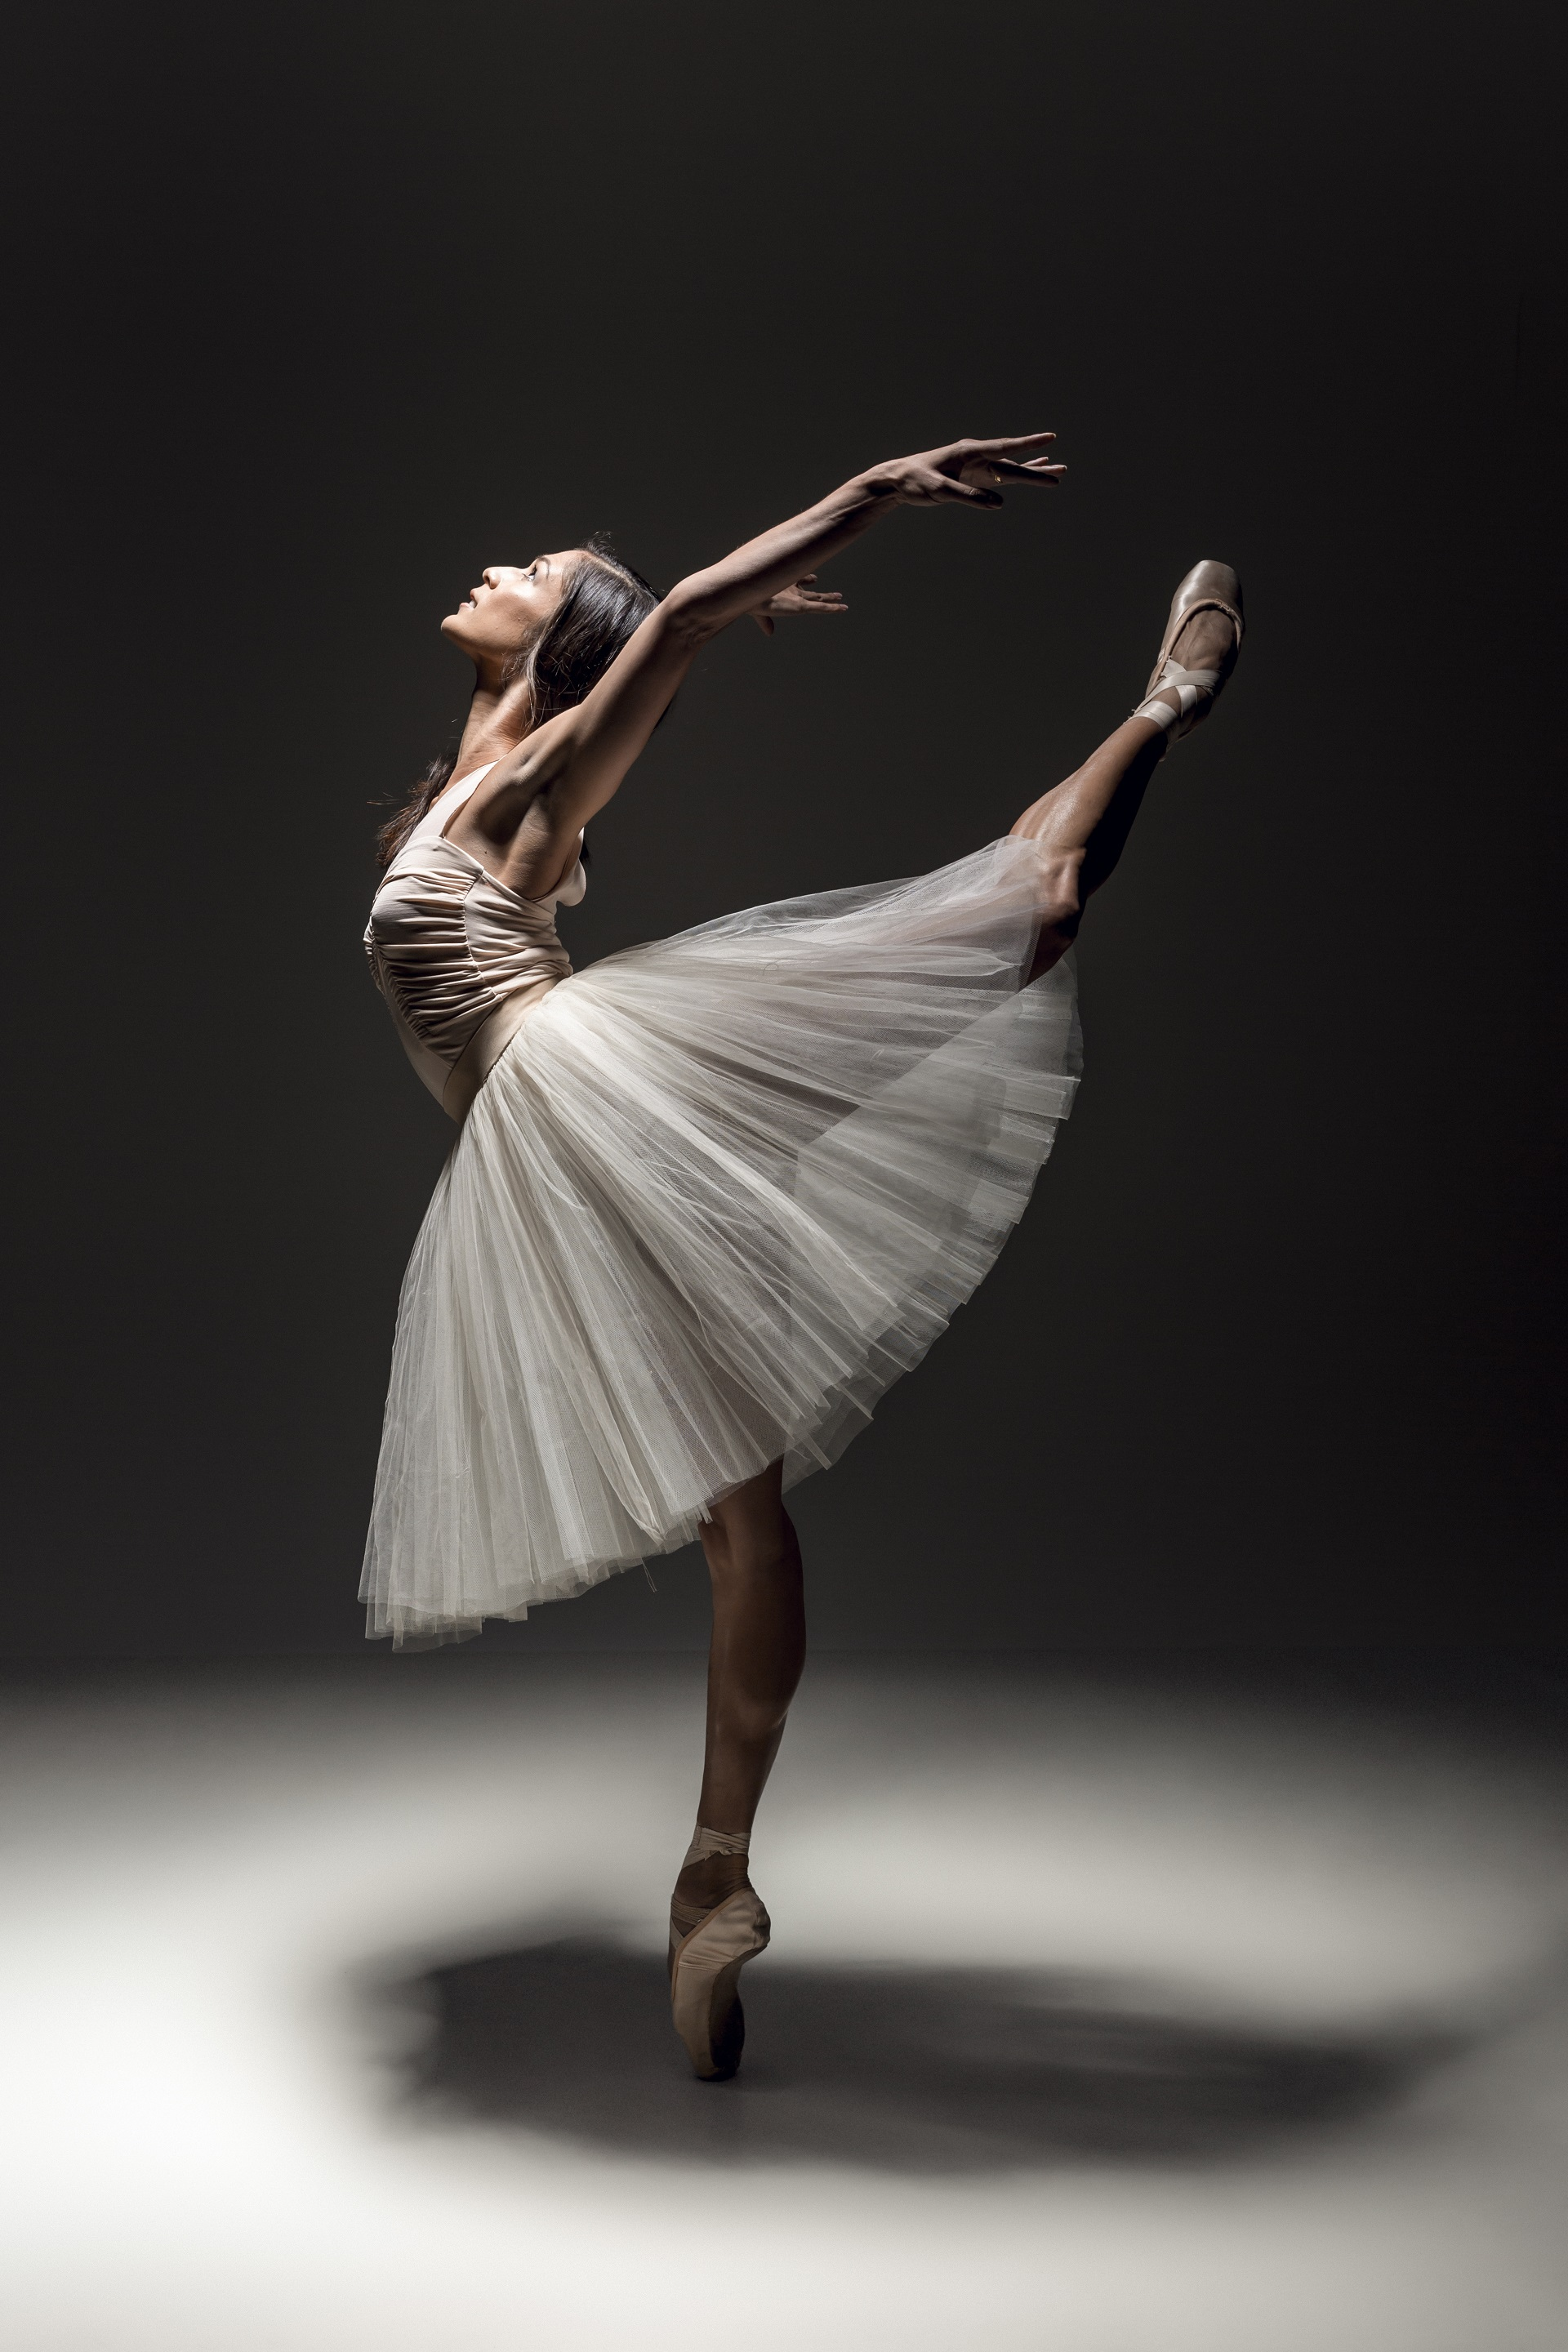 Aus_Ballet_D3-467_Robyn Hendricks-Edit_02 - Copy - Copy.jpg